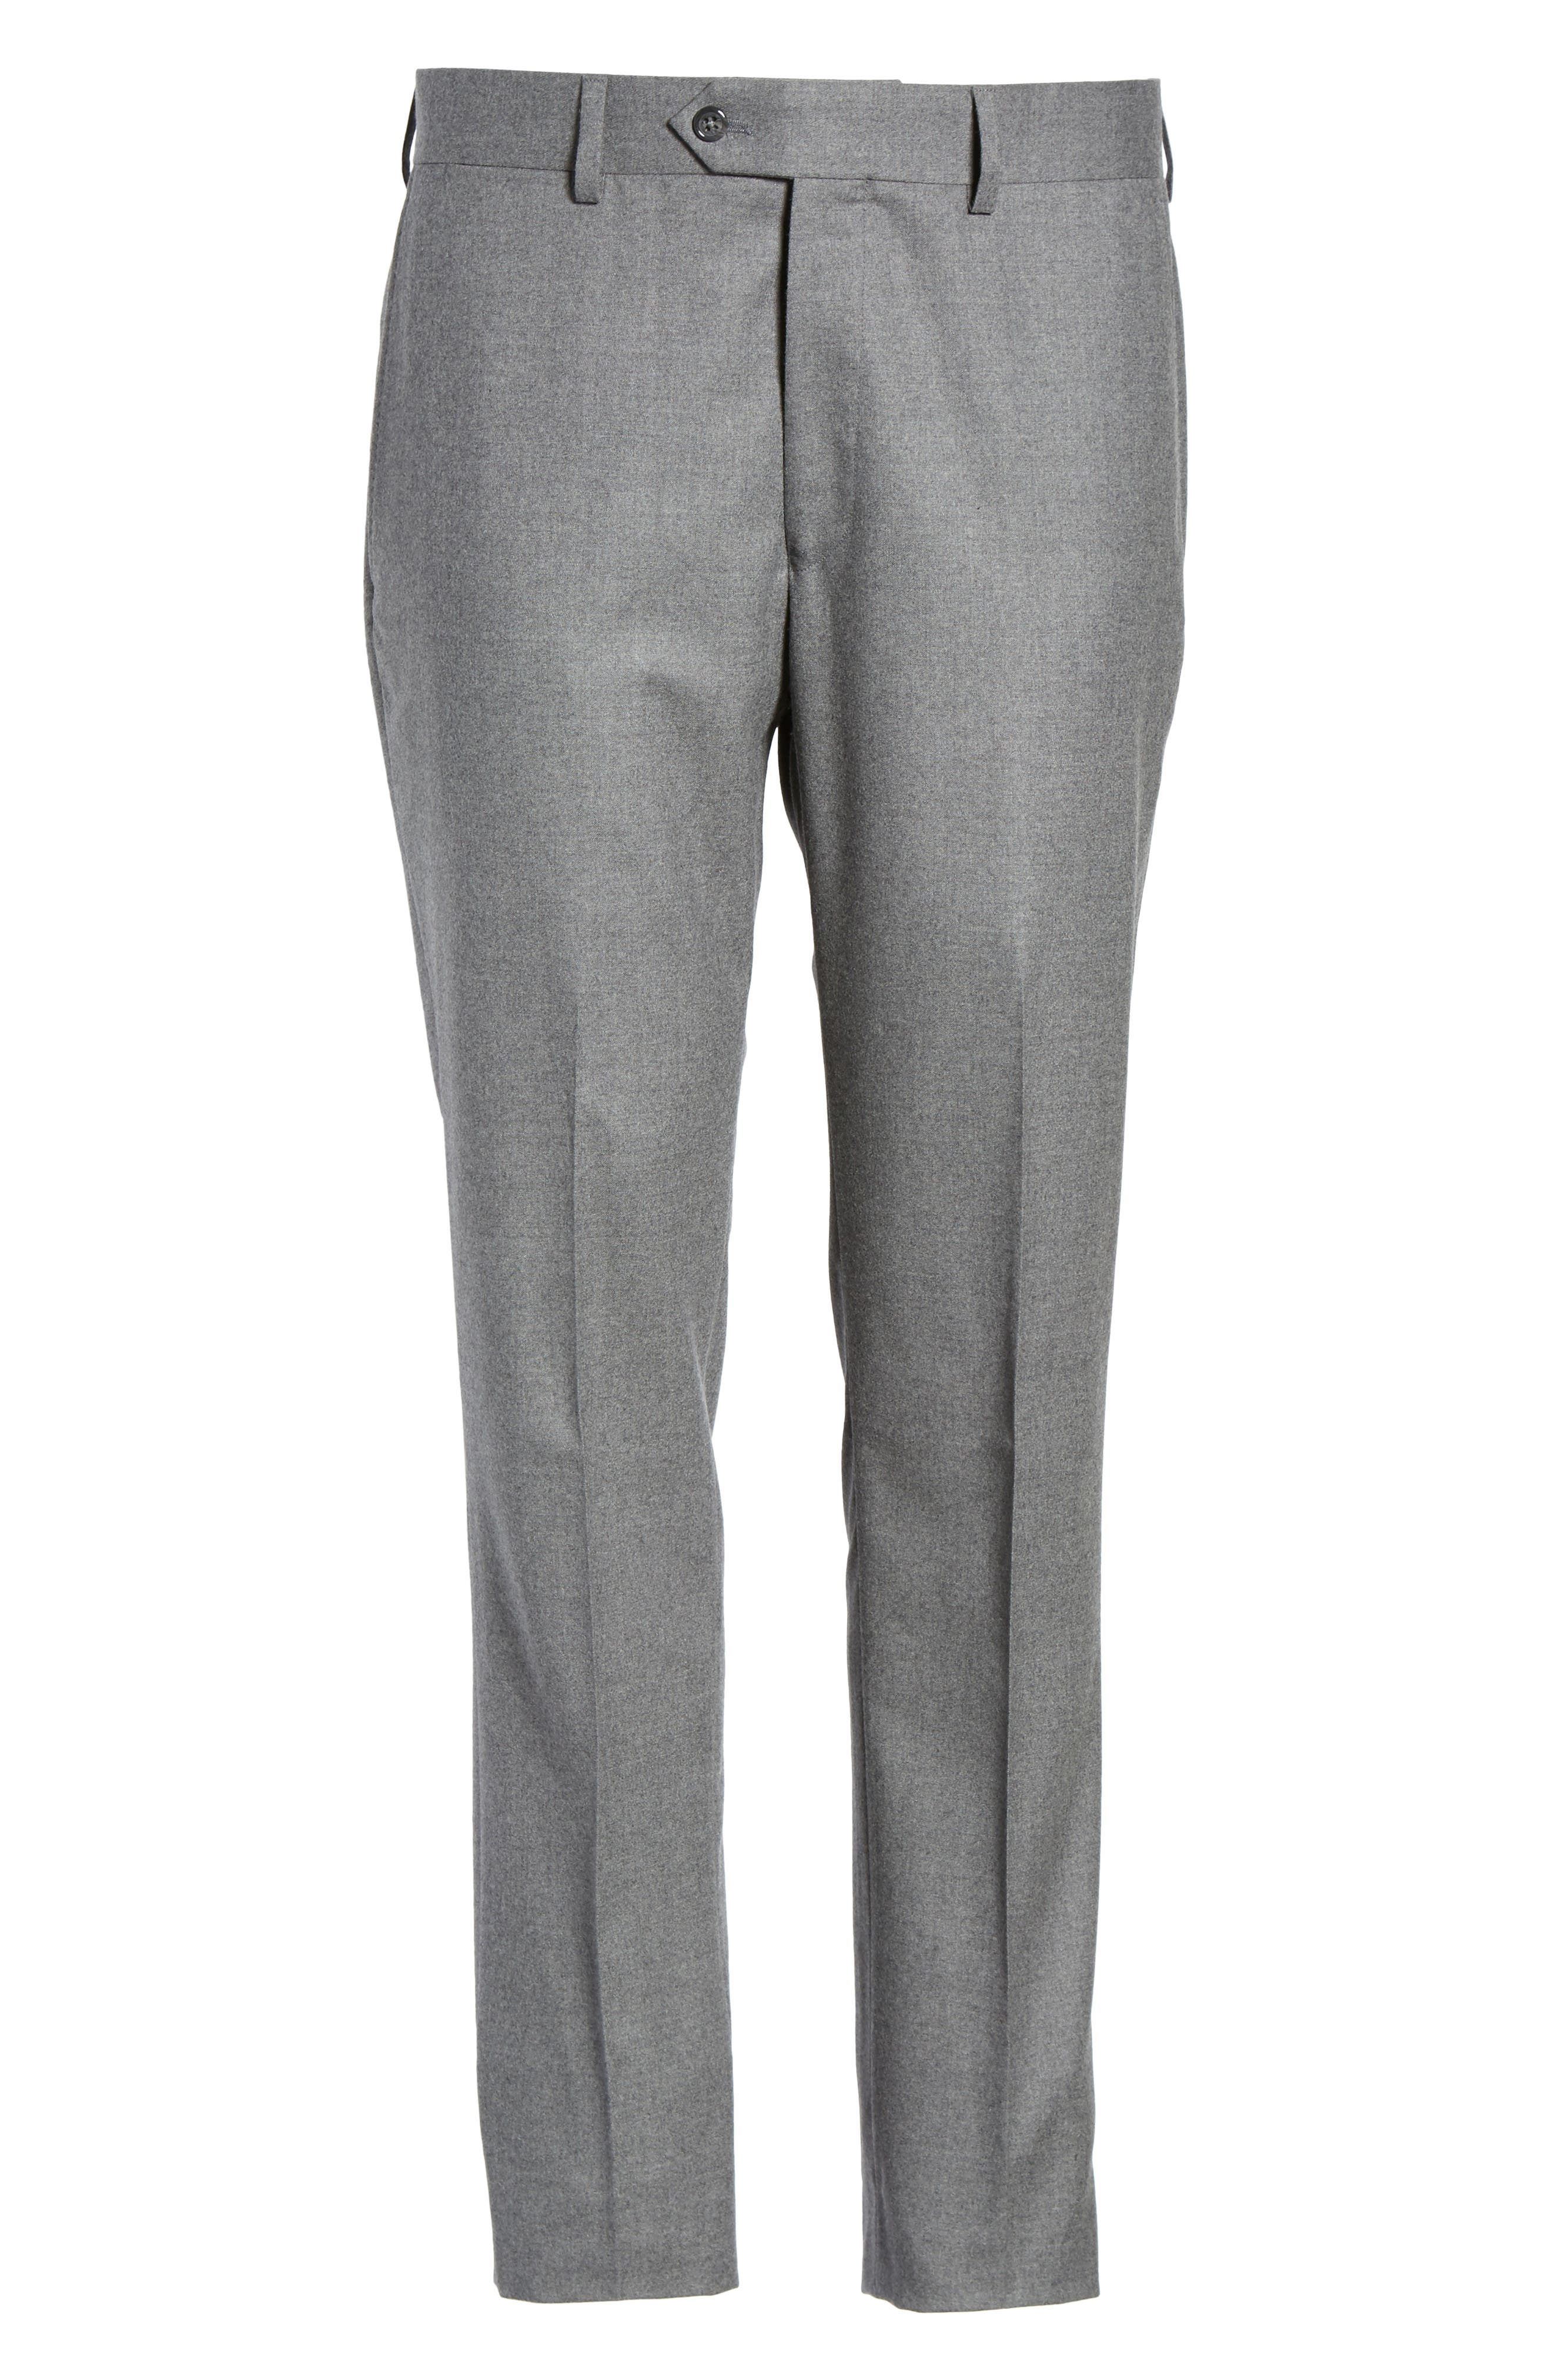 Sutton Flat Front Stretch Wool Trousers,                             Alternate thumbnail 6, color,                             Light Grey